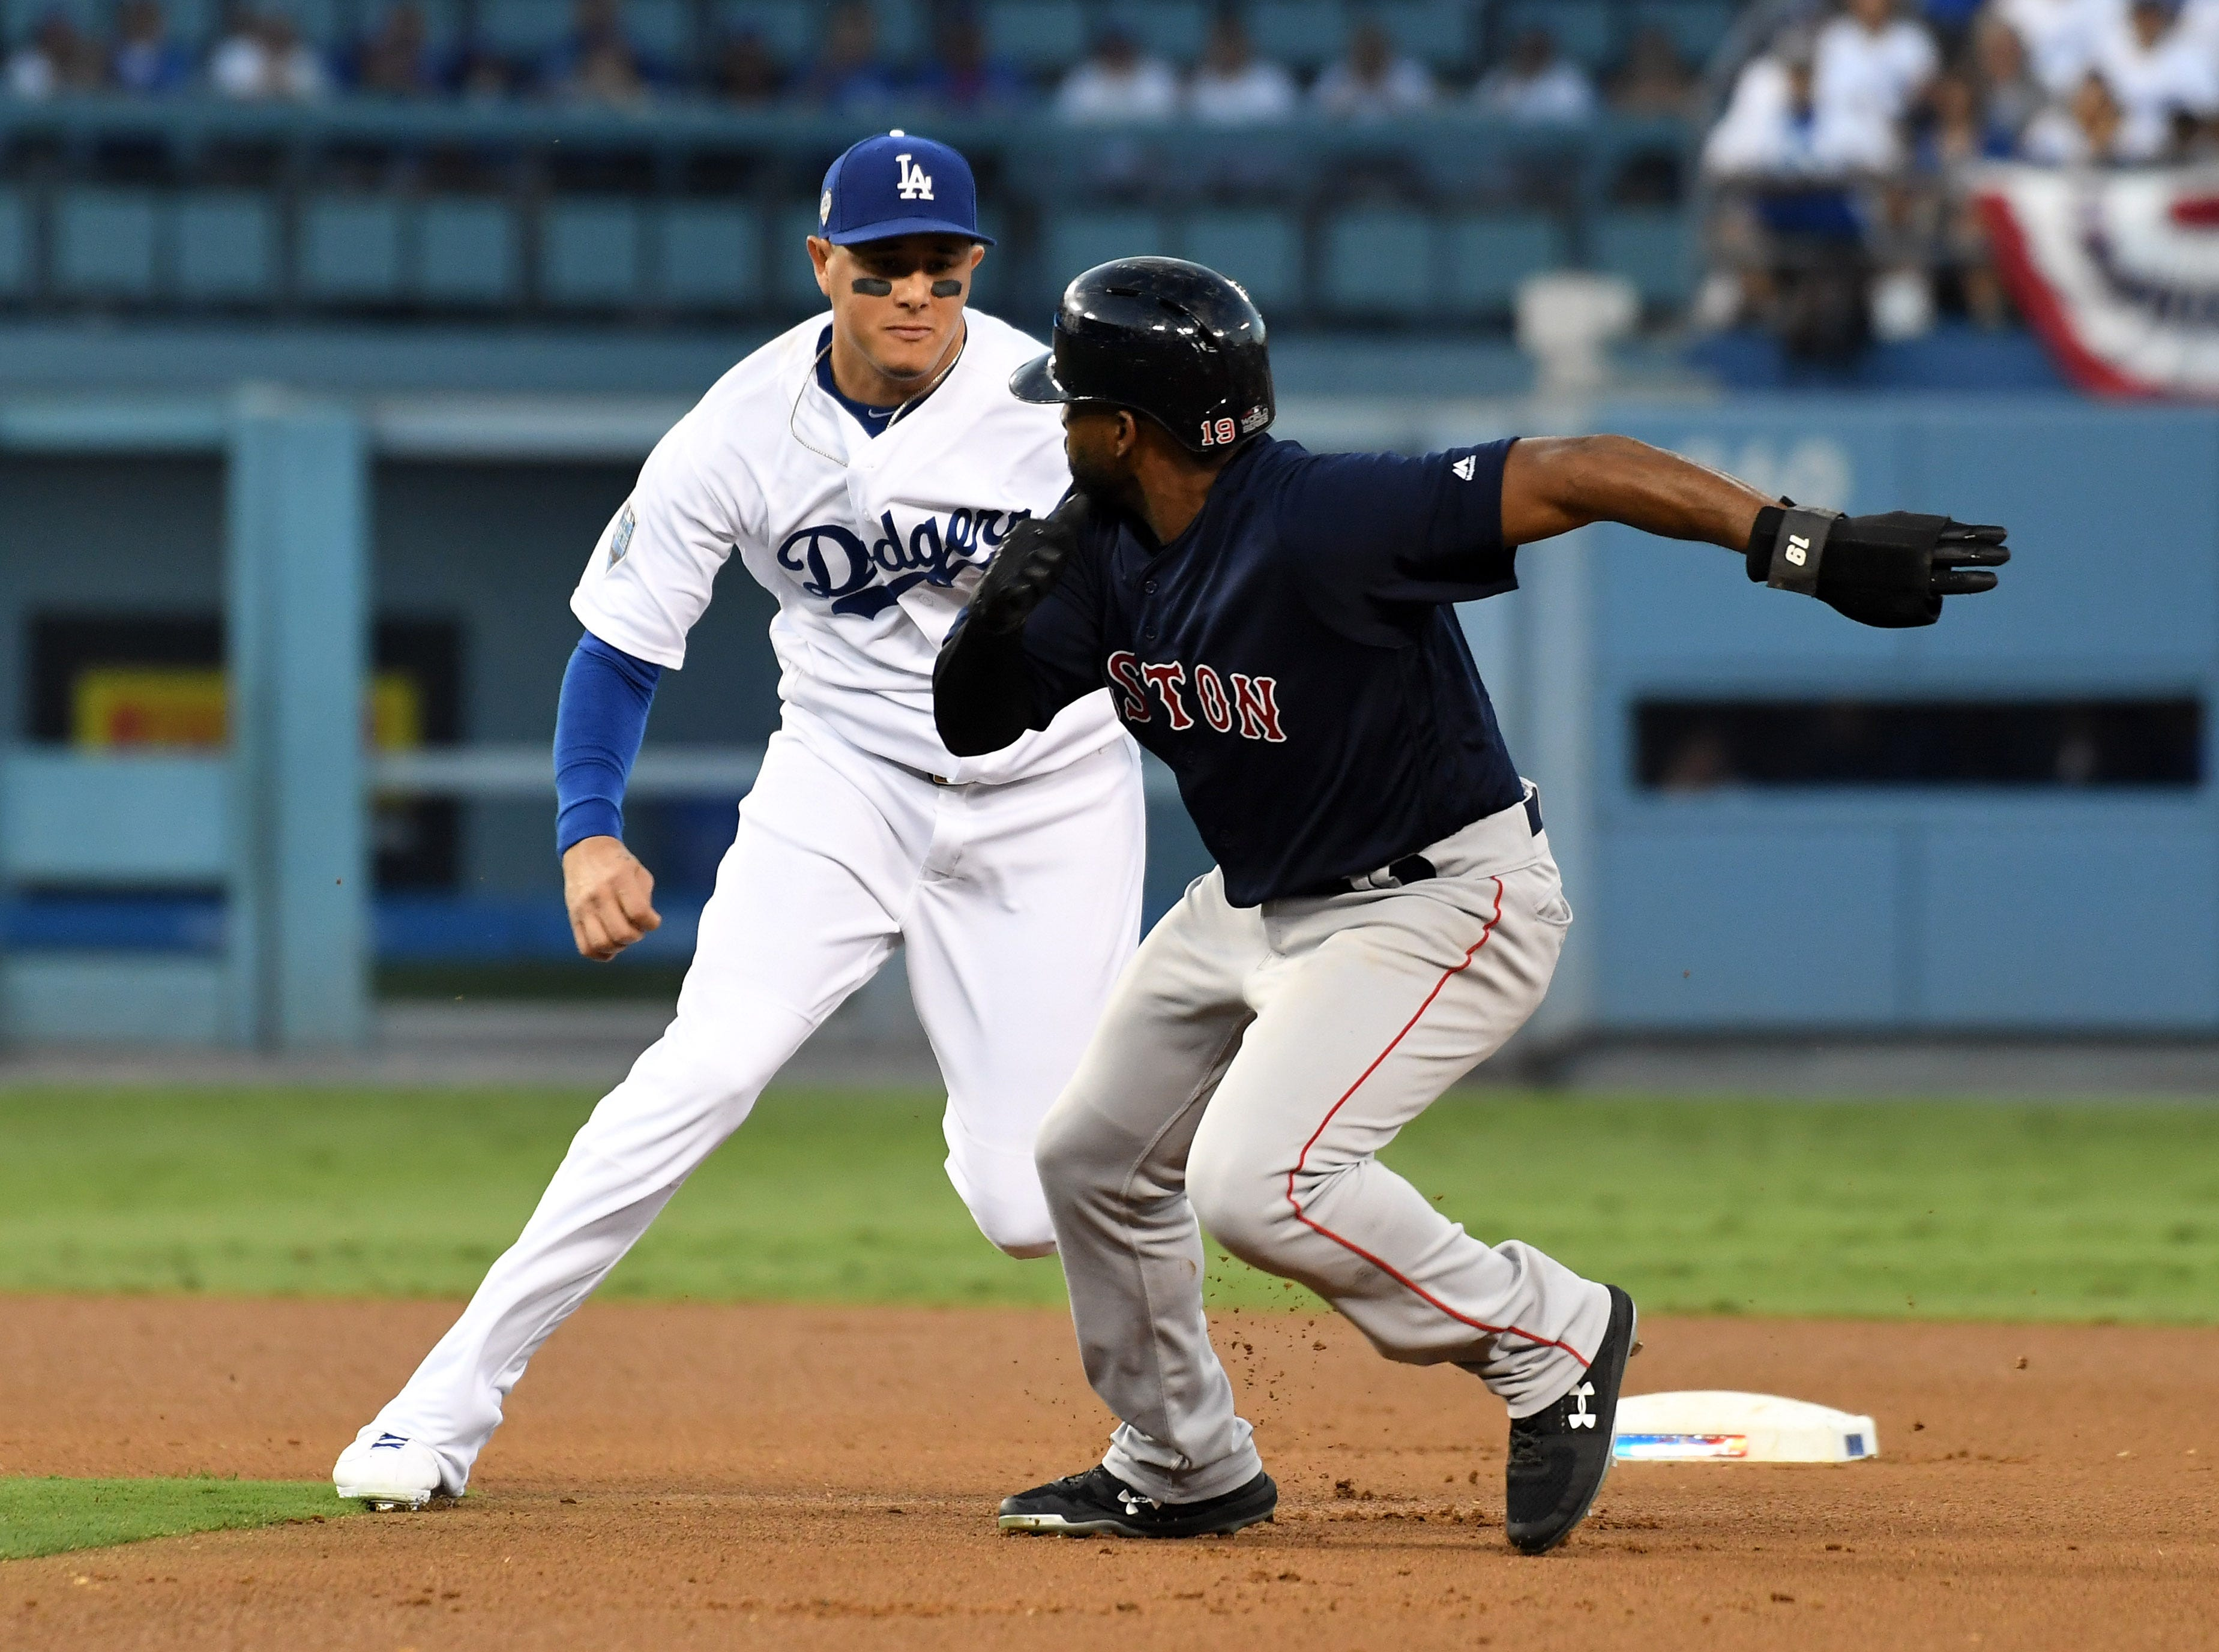 Game 3 at Dodgers Stadium: Manny Machado tags out Jackie Bradley Jr. trying to steal in the third inning.